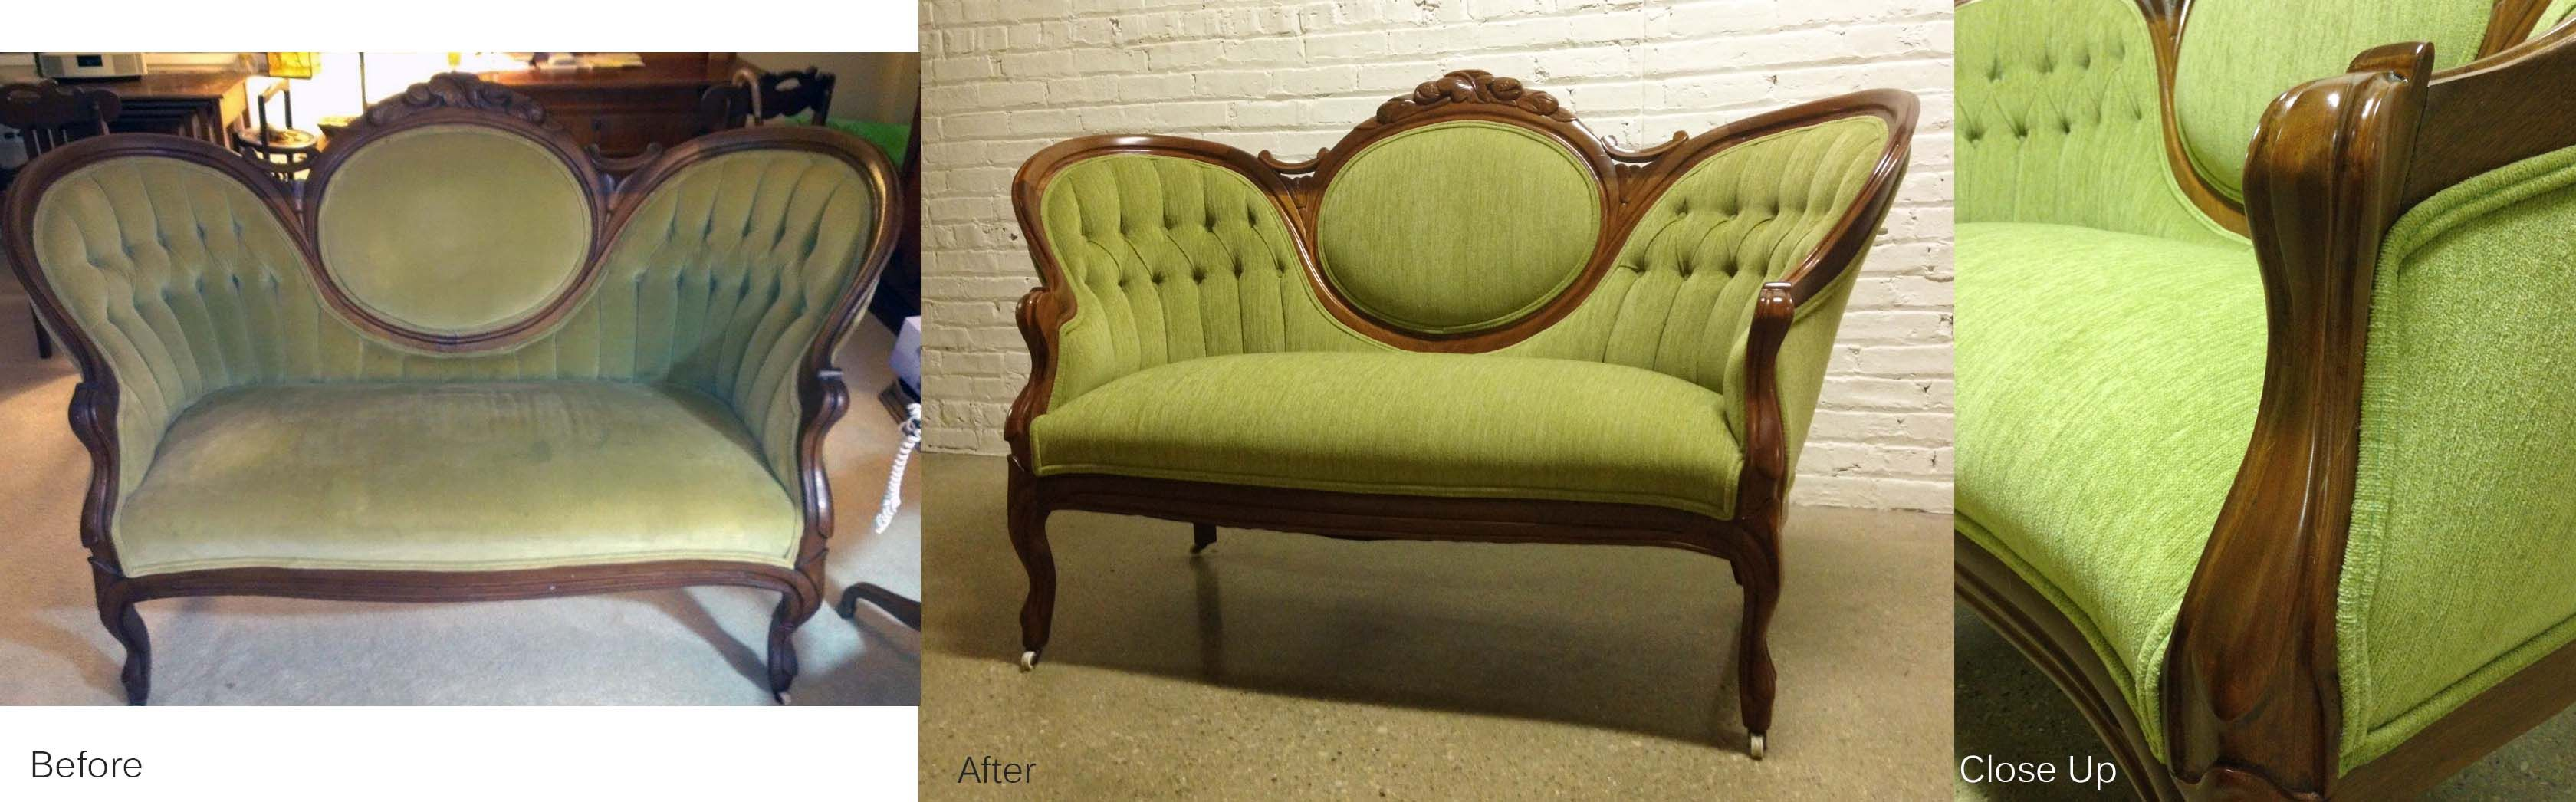 We refinished the wood, repaired the suspension, added new foam, and reupholstered in a beautiful soft green fabric.